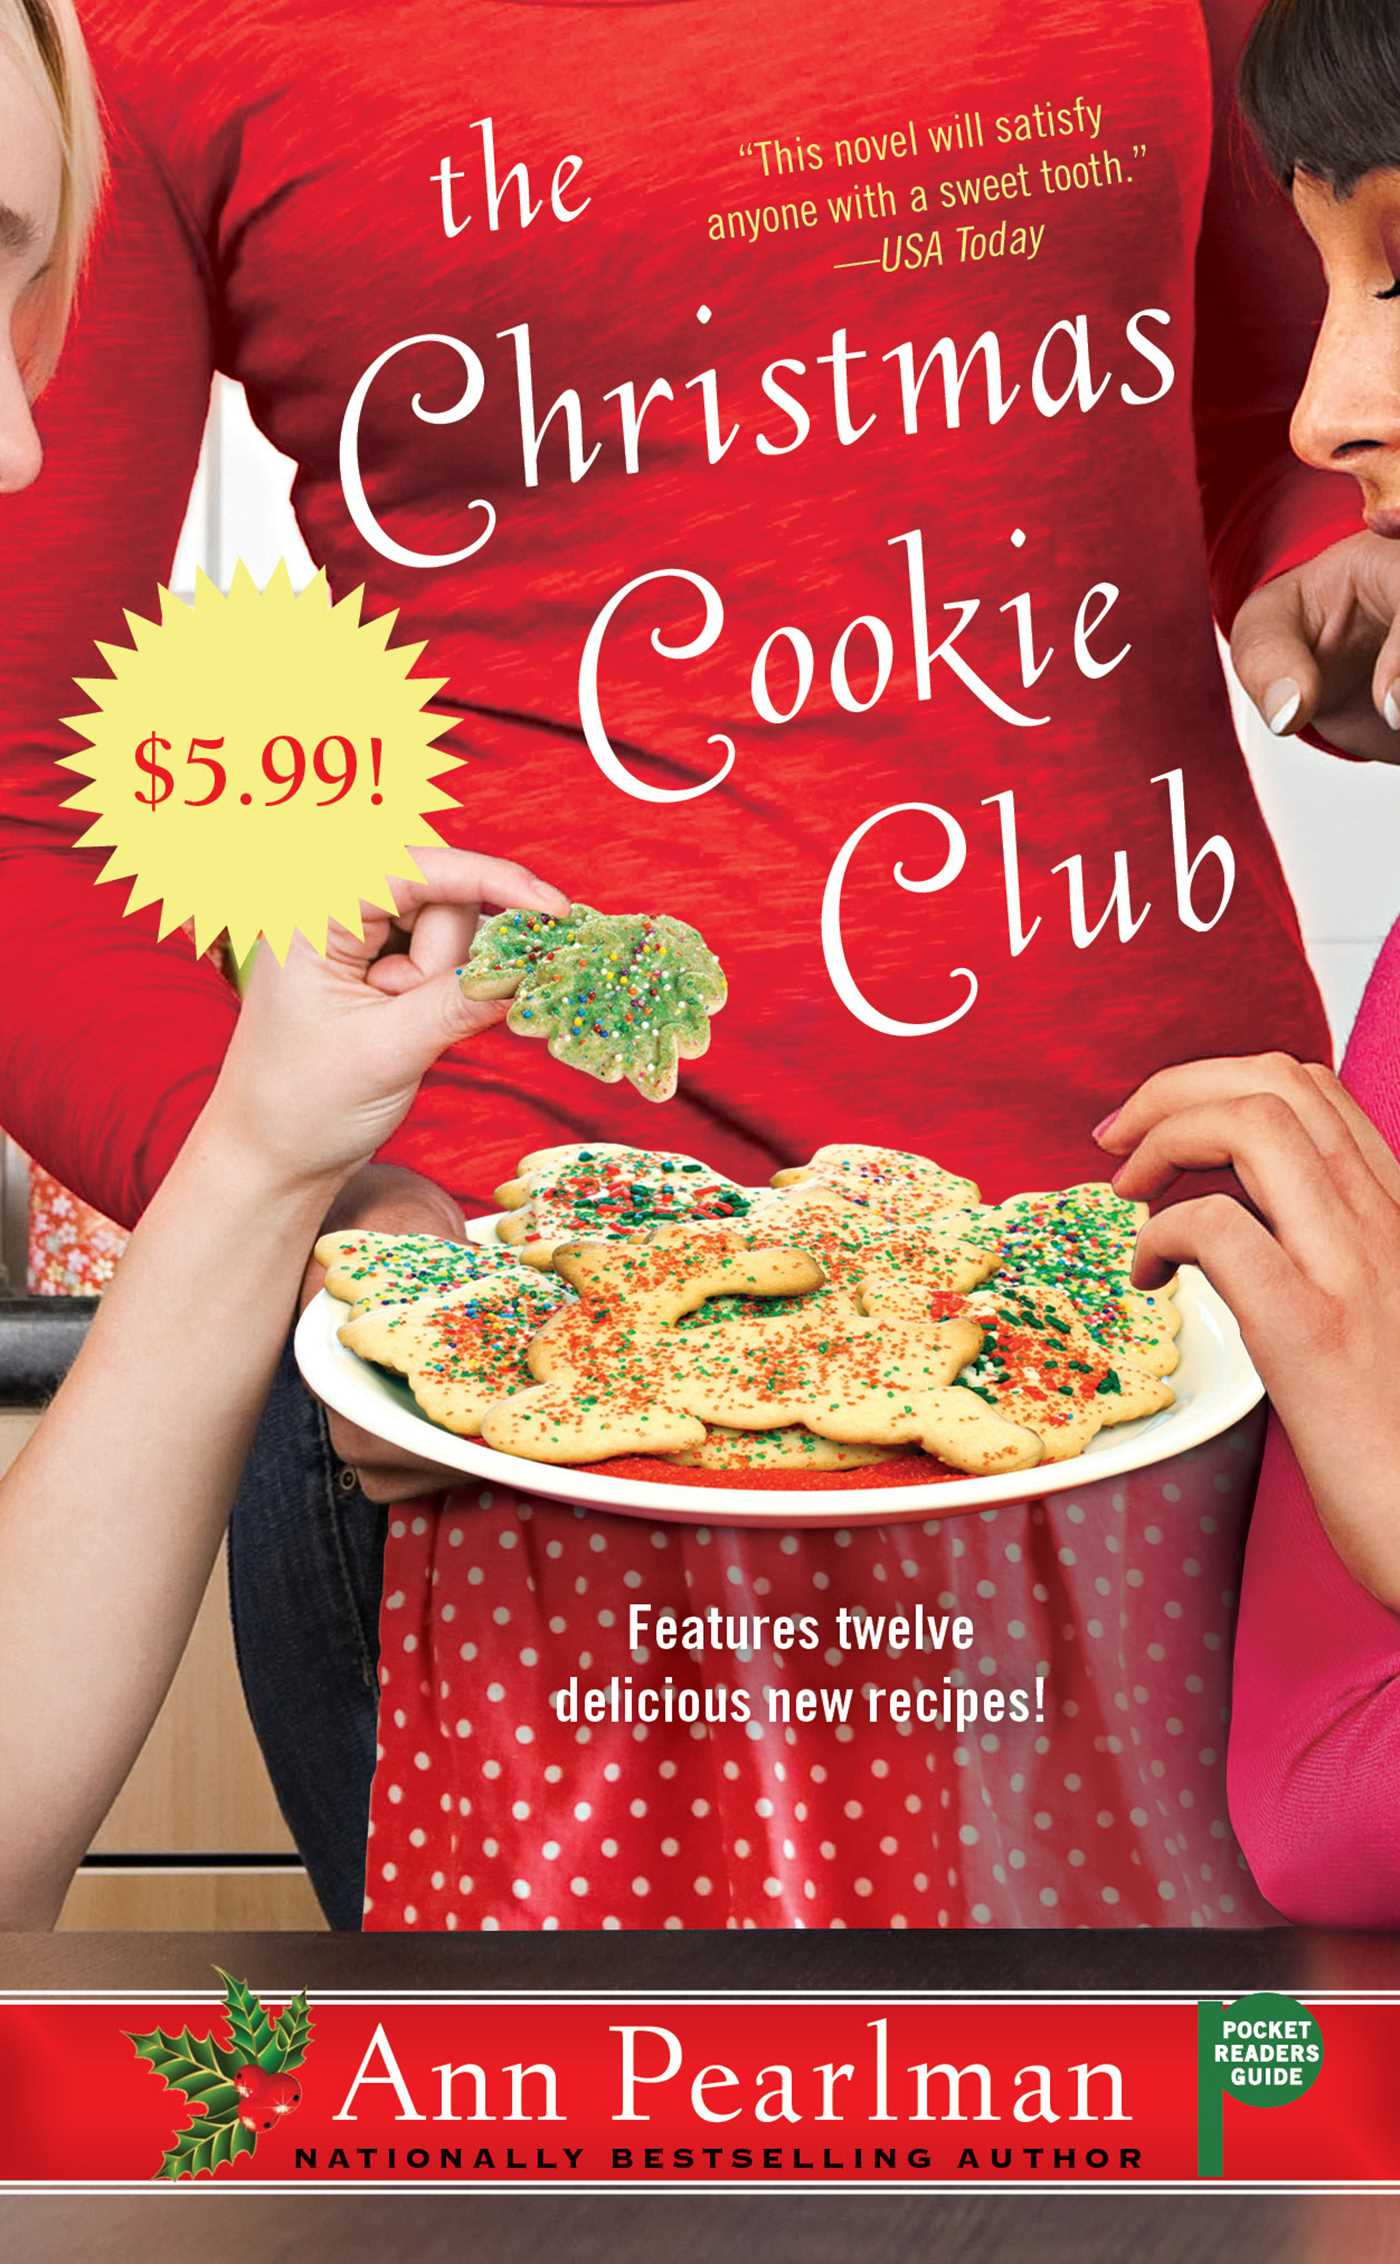 The-christmas-cookie-club-9781439159415_hr